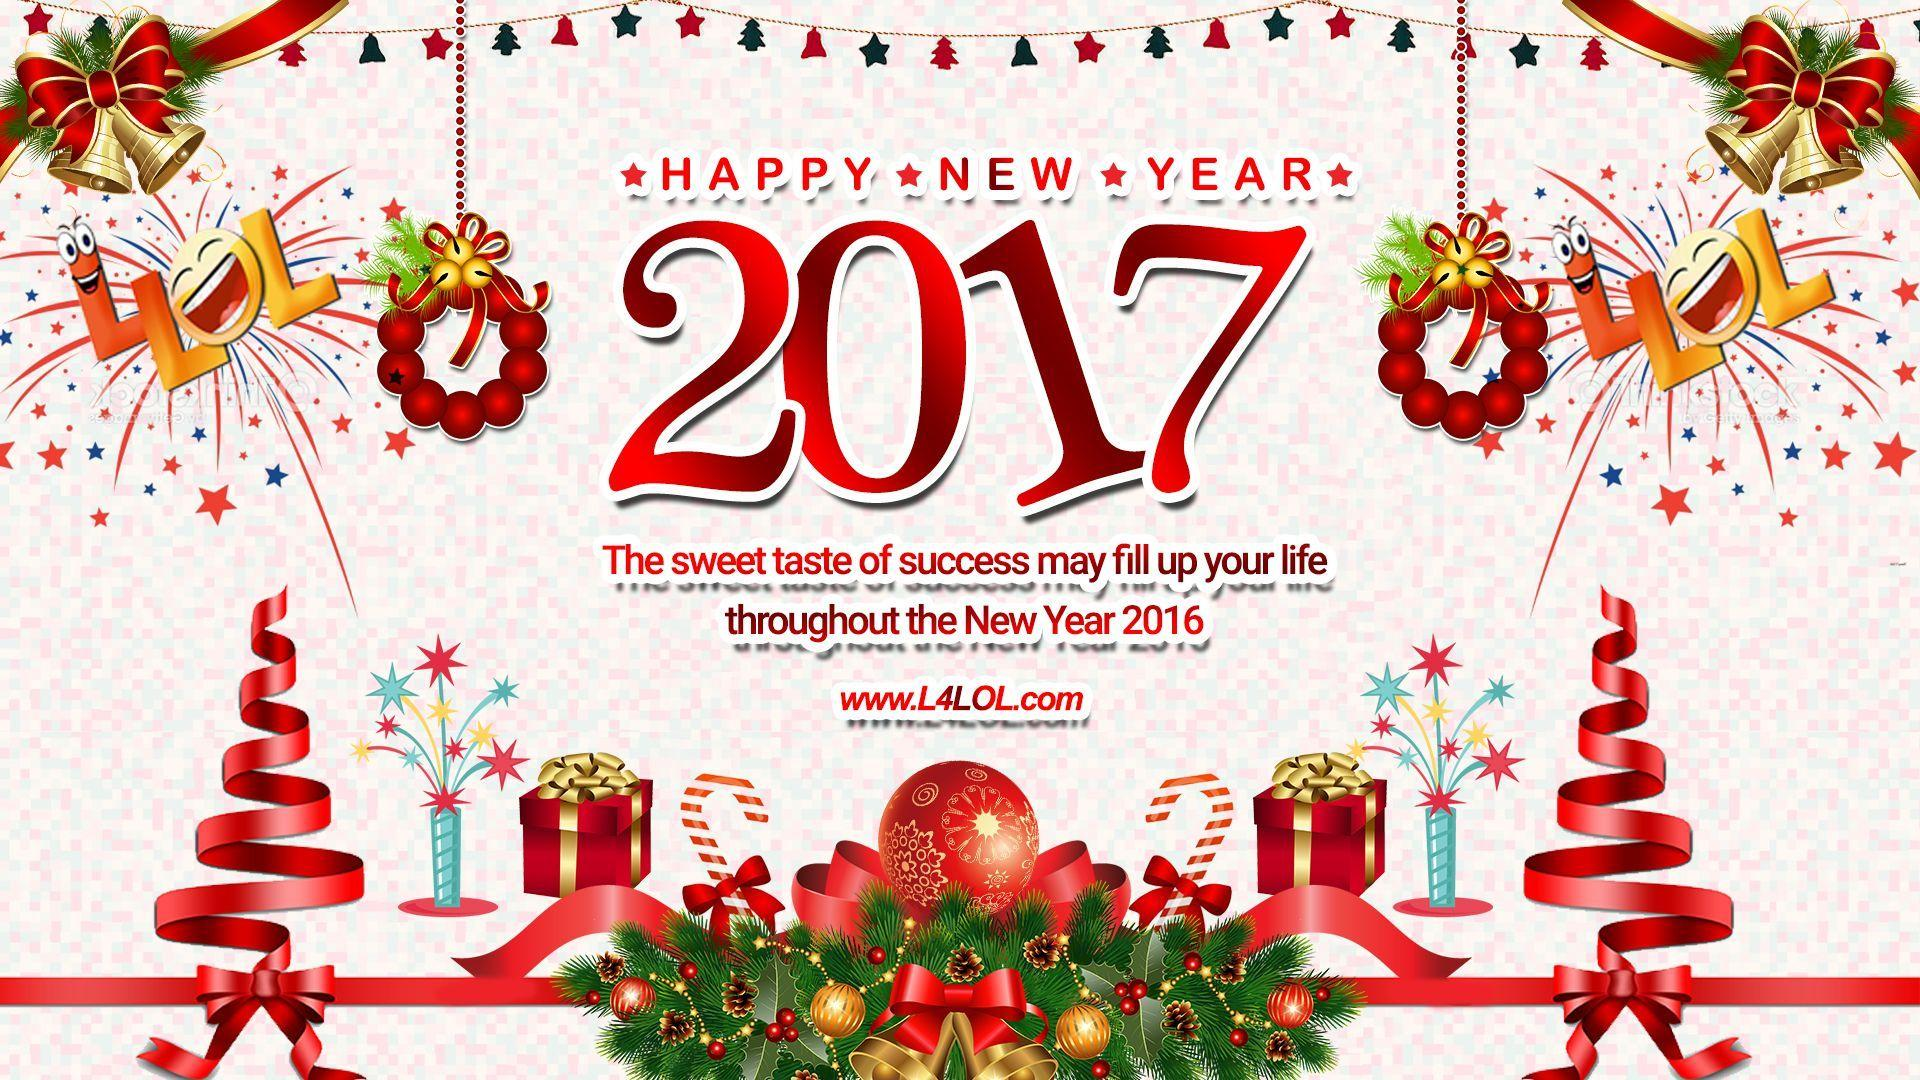 merry christmas and happy new year 2017 wishes images merry